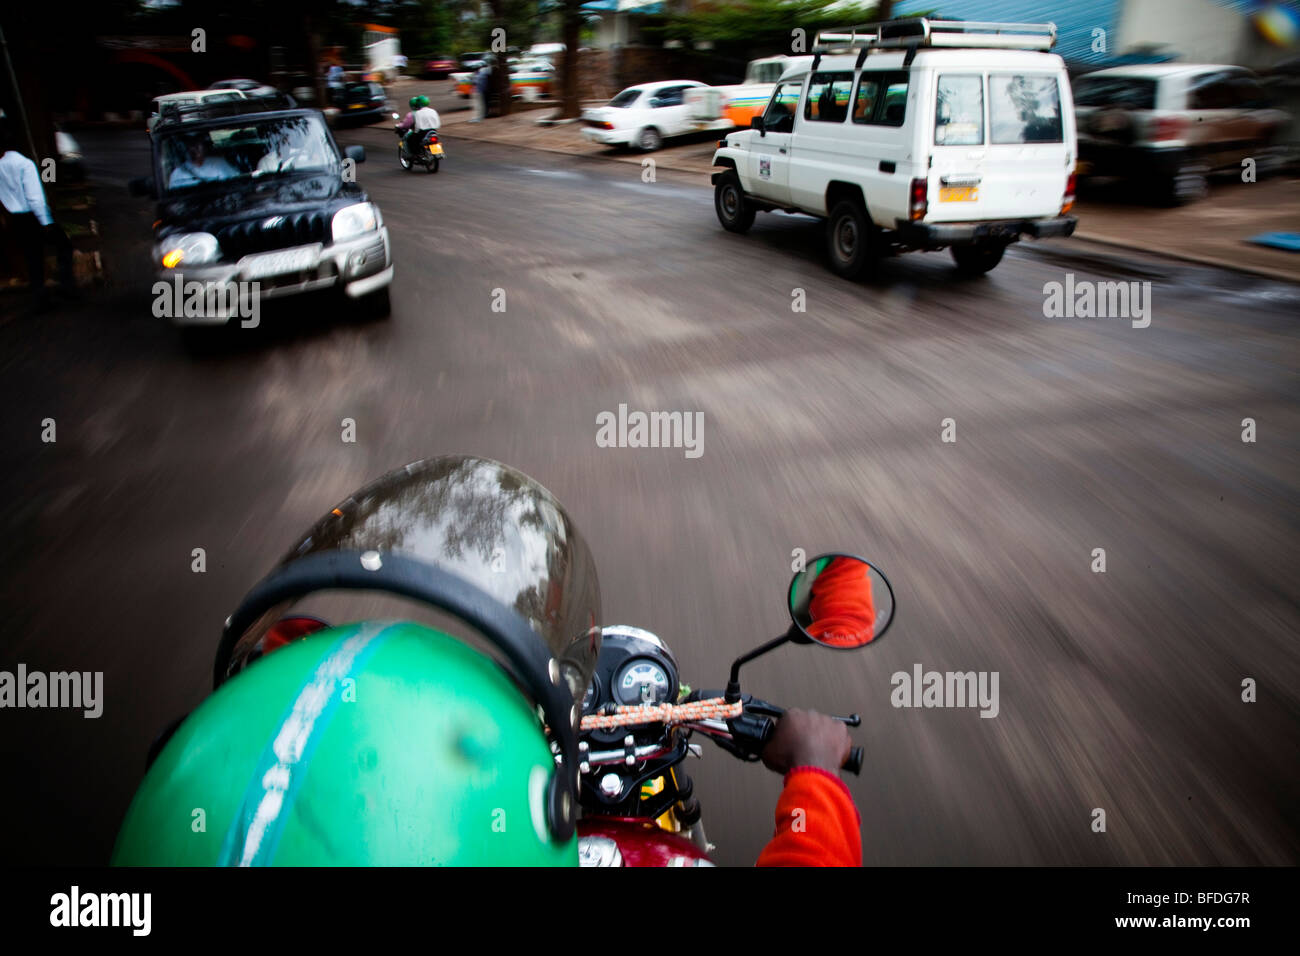 A view from the backseat of a moving motorcycle through the streets of Kigali, Rwanda. - Stock Image